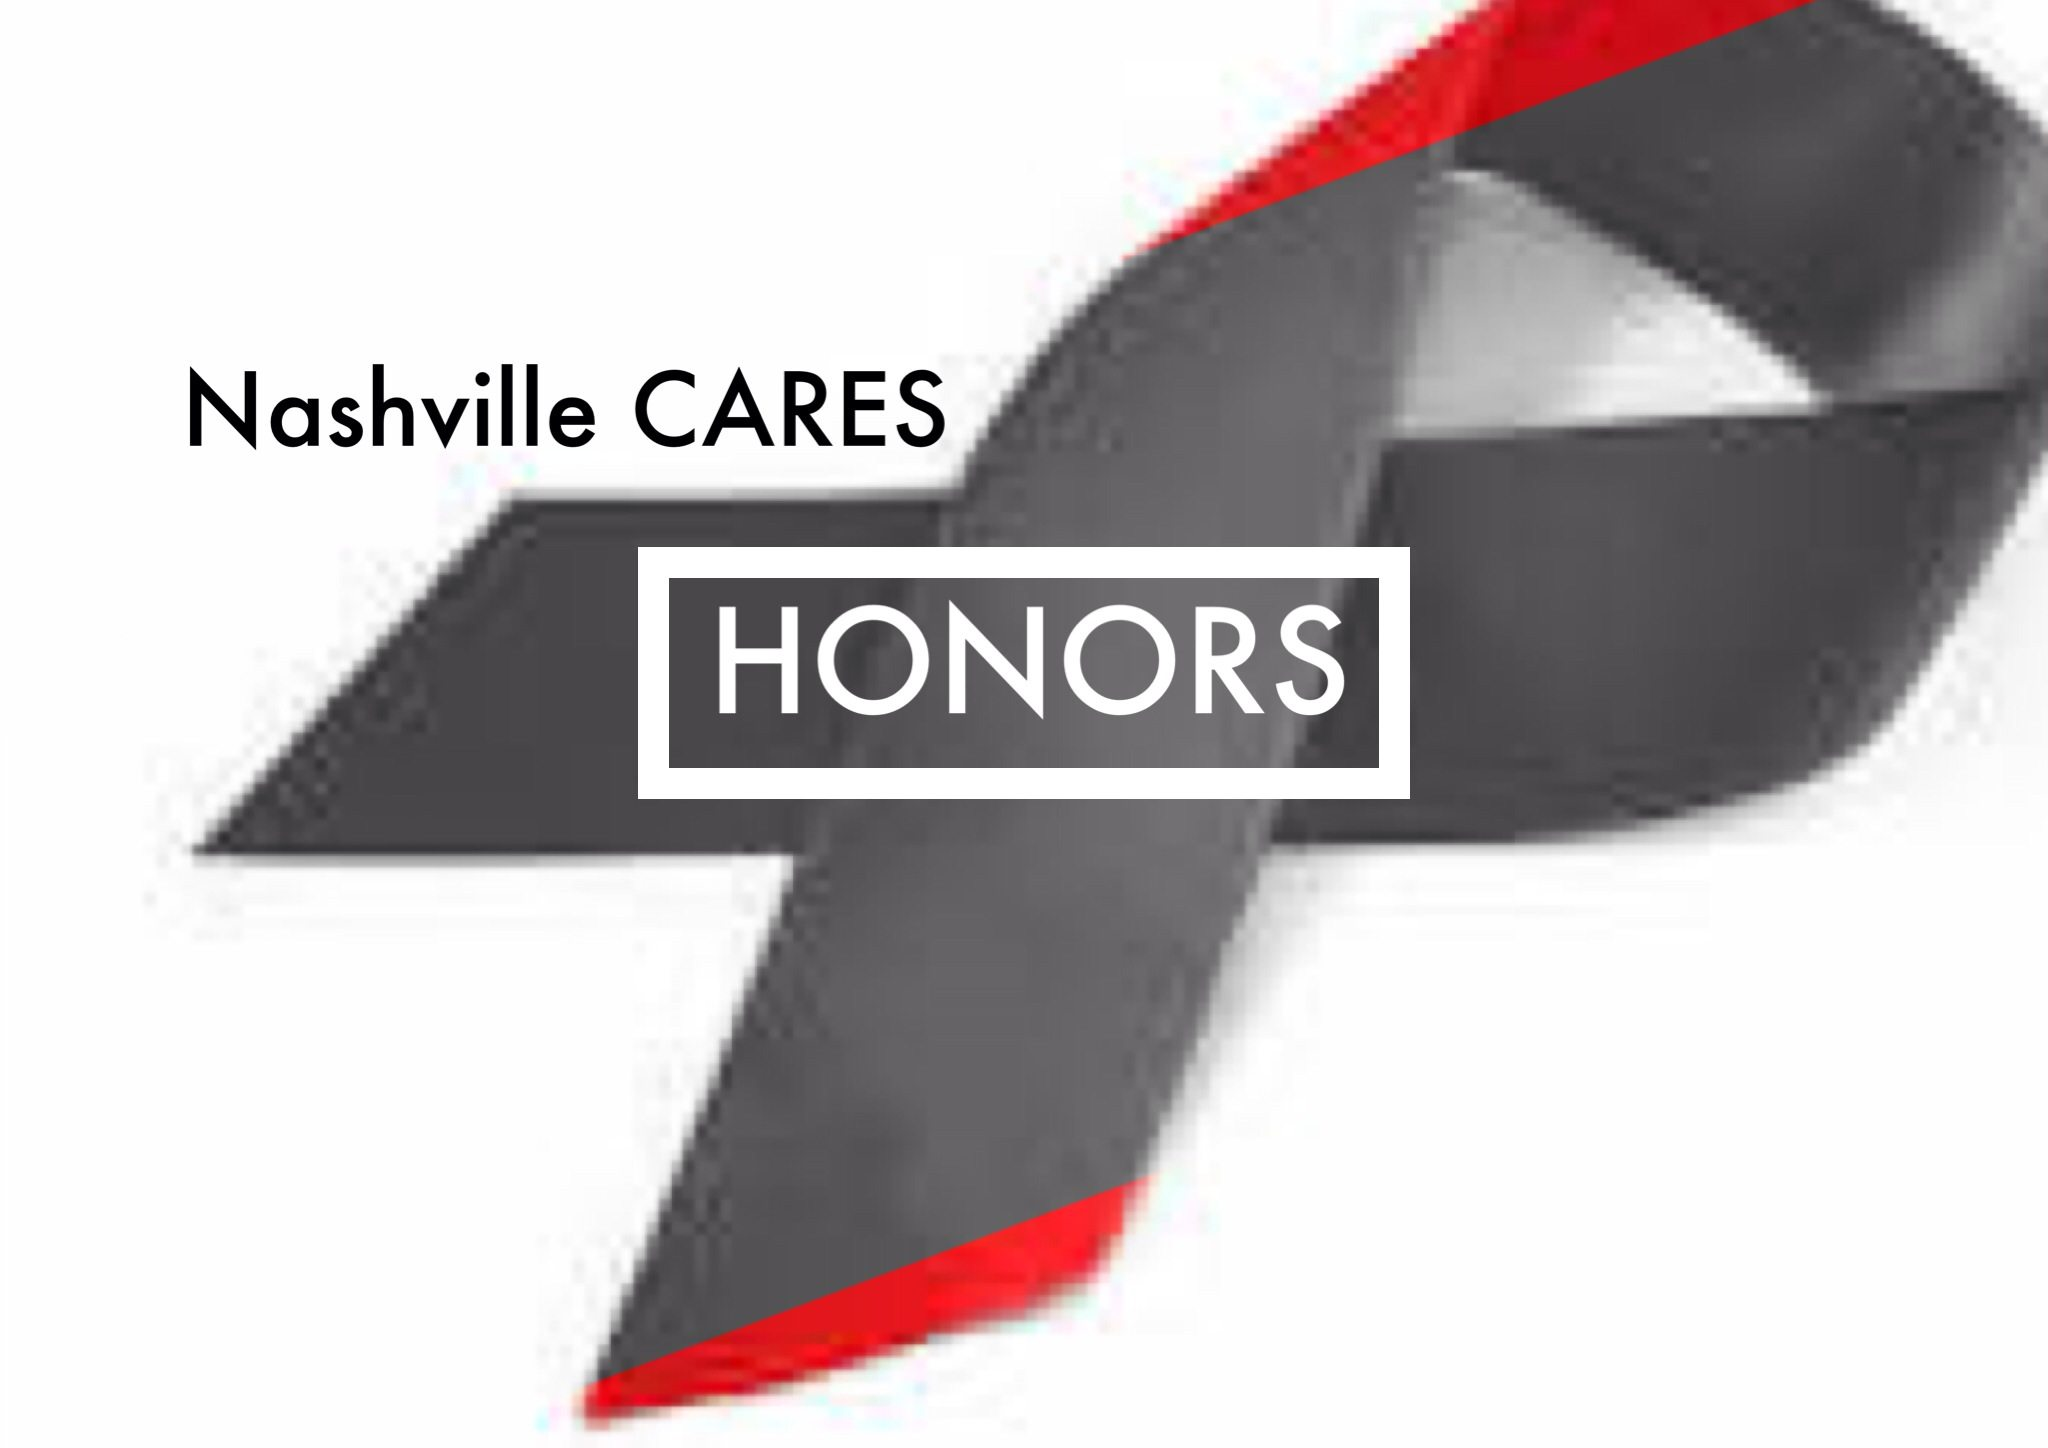 Nashville CARES Honors